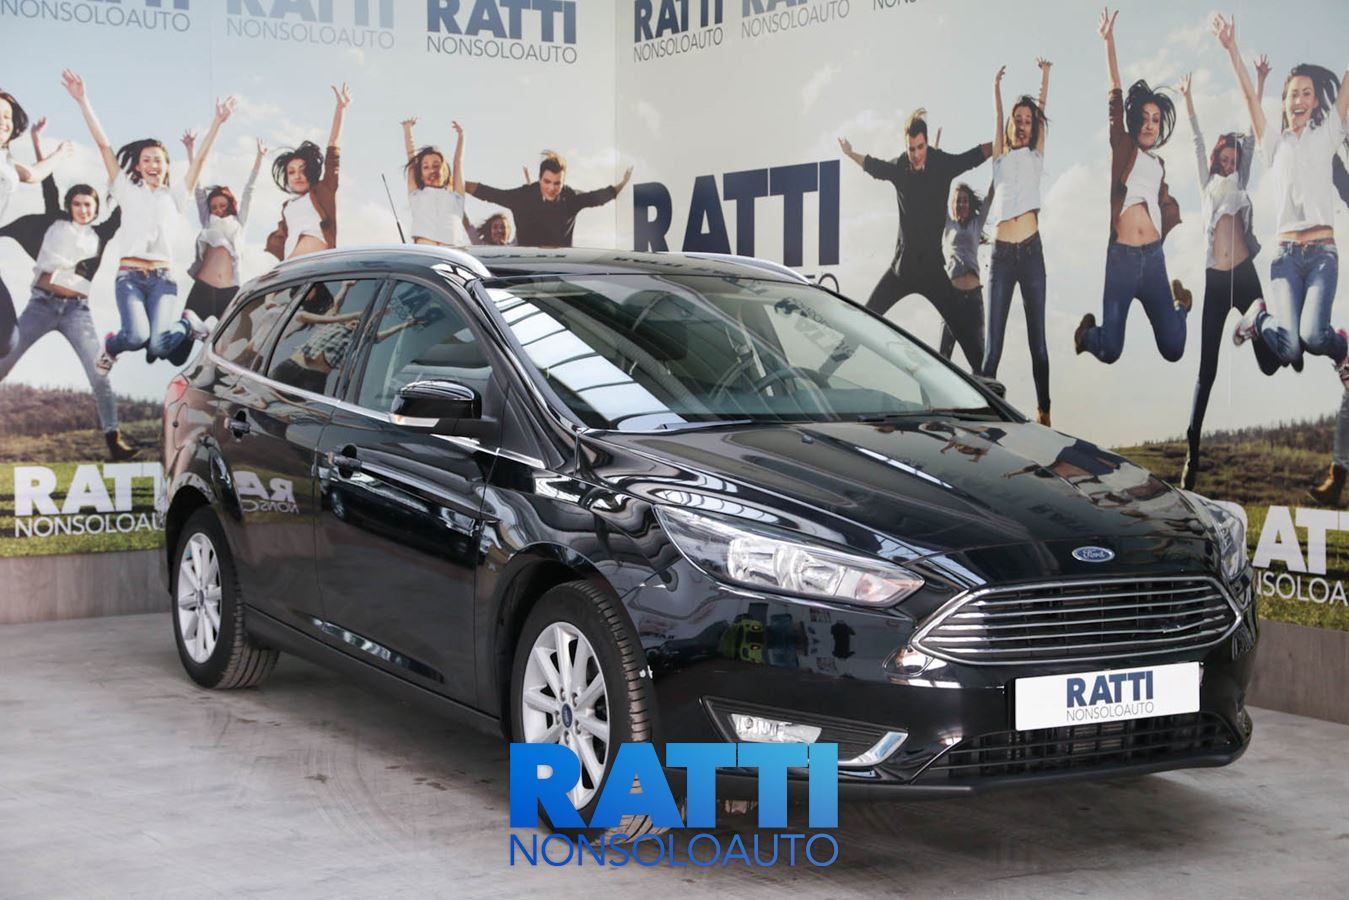 FORD Focus 1.5 TDCi 120 CV Start&Stop SW TITANIUM SHADOW BLACK cambio Manuale Diesel Aziendale station wagon 5 porte 5 posti EURO 6